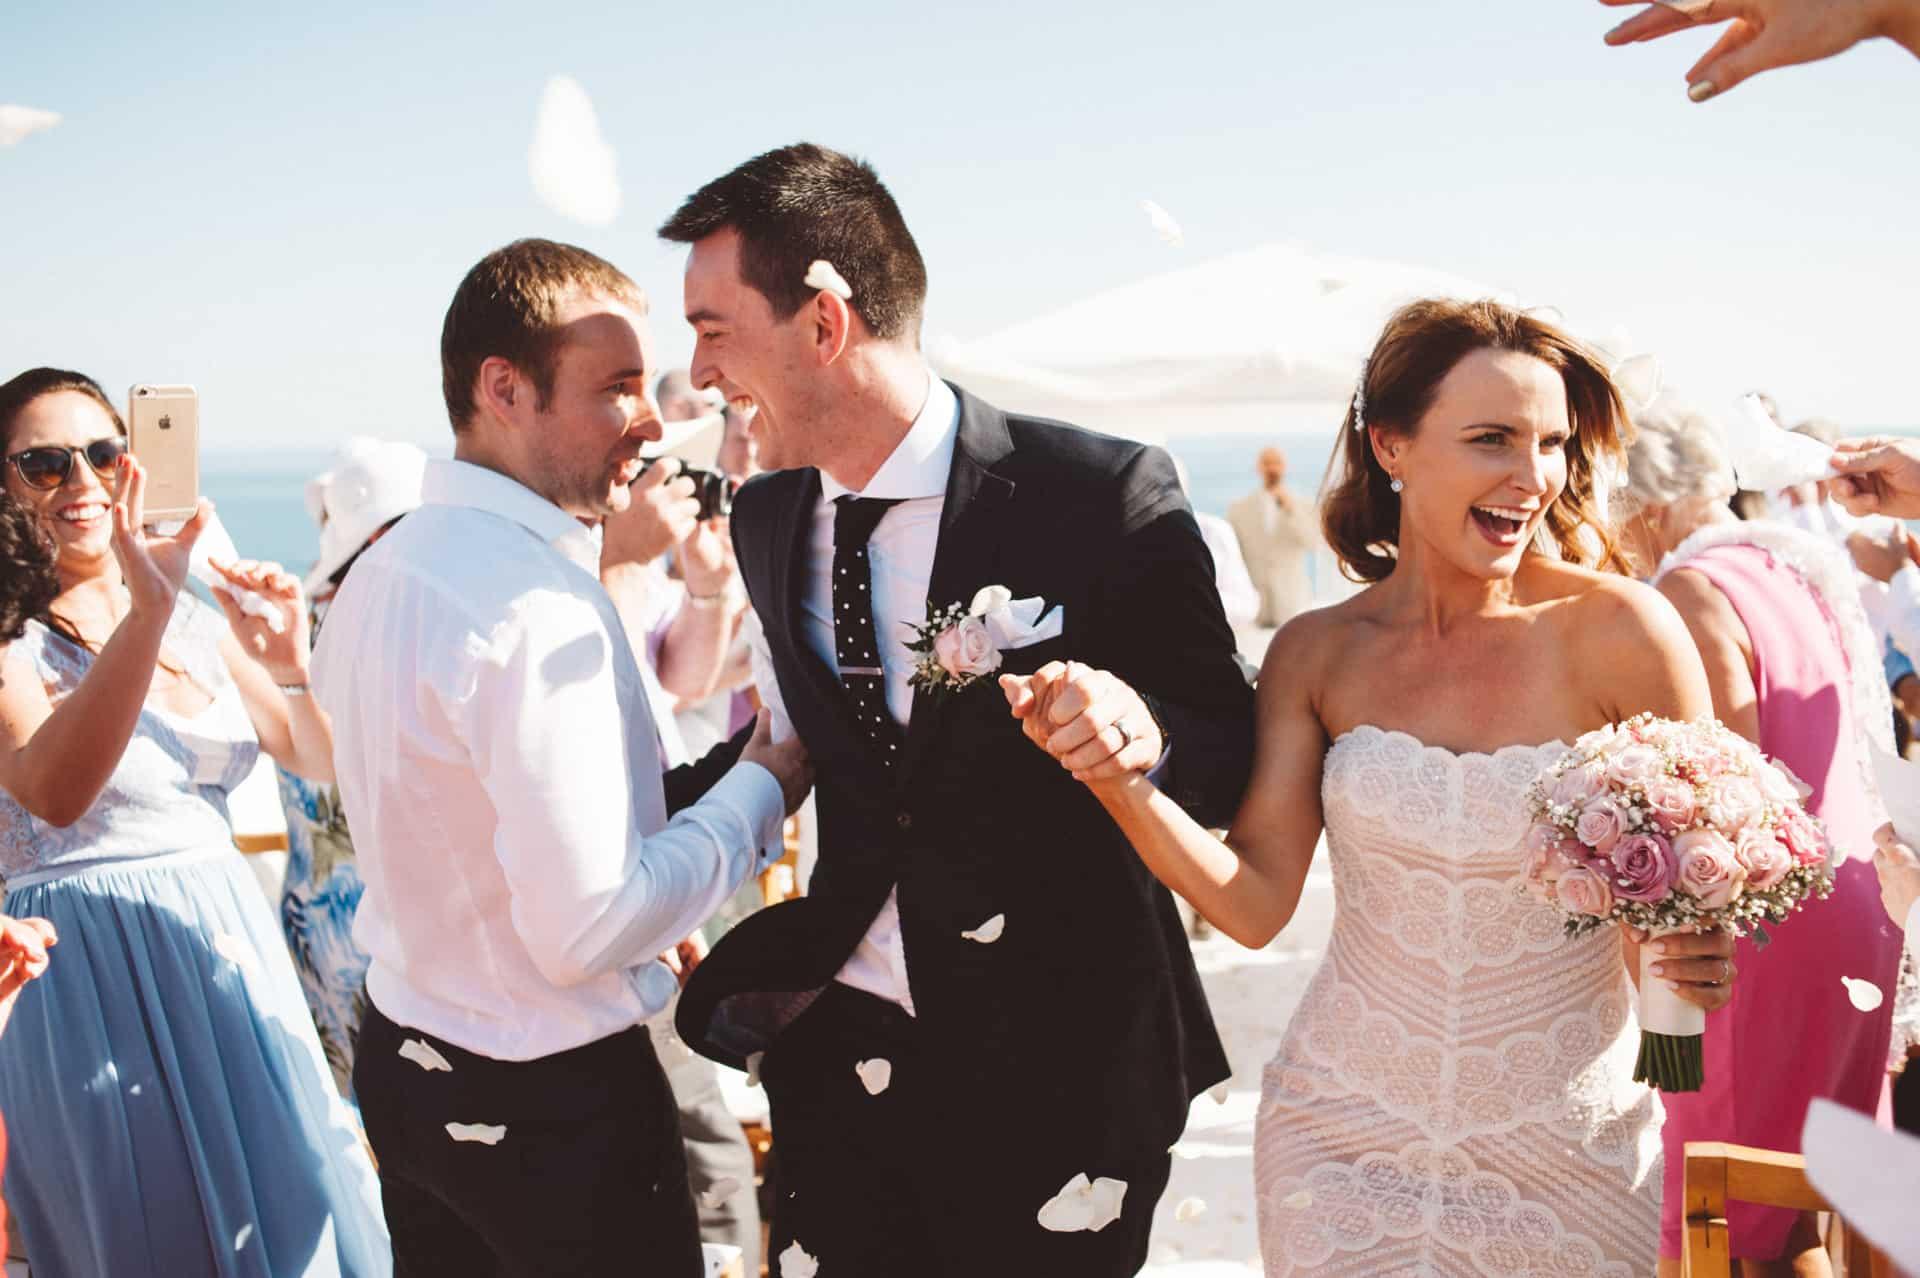 Best wedding images of the year (178 of 316)